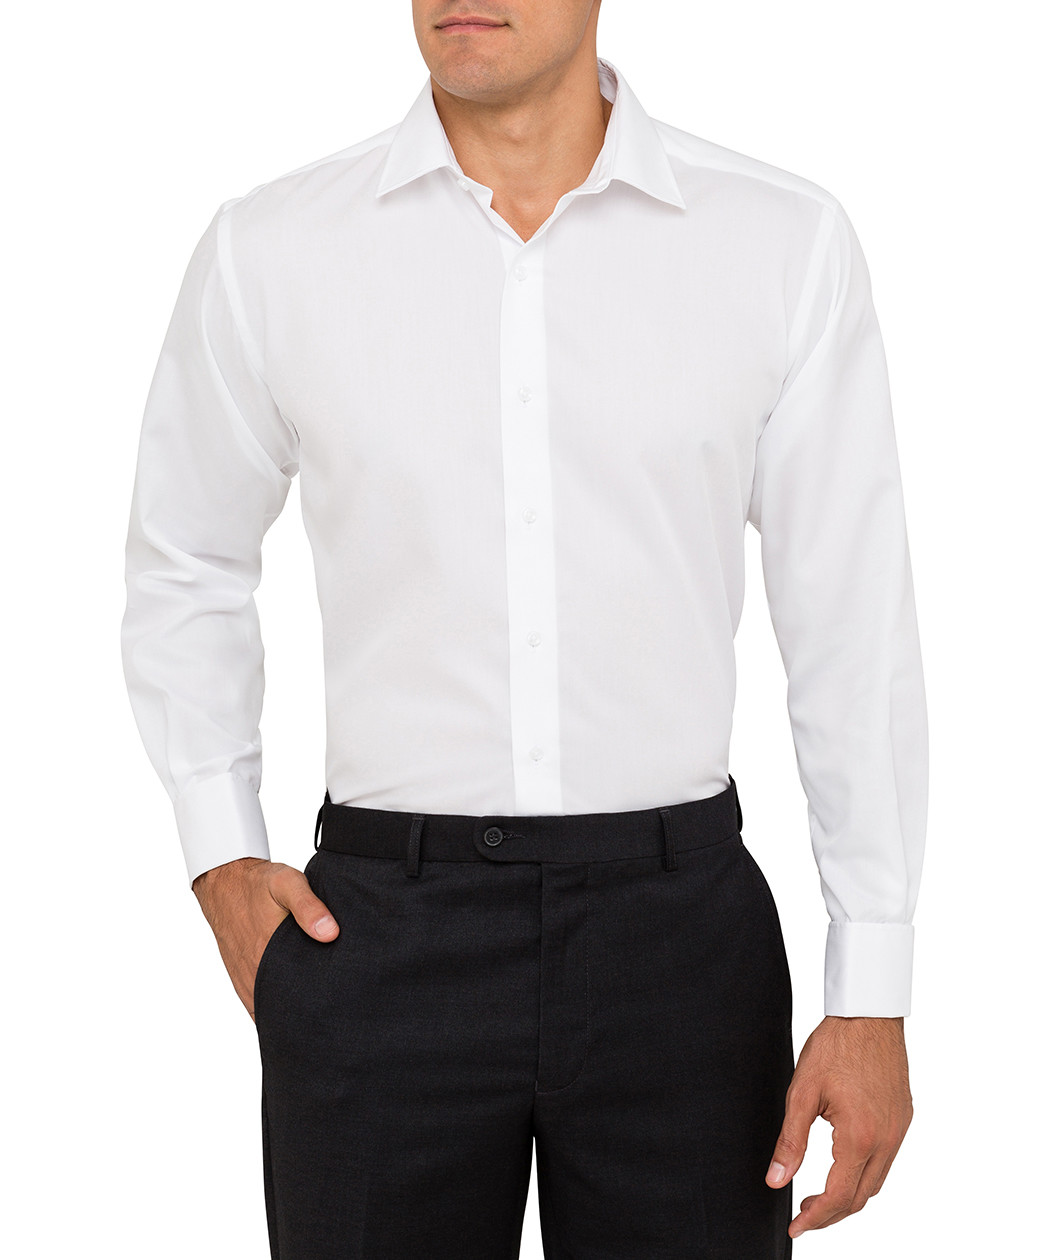 Van Heusen Euro Fit Cotton White Mens Shirt | Van Heusen Australia